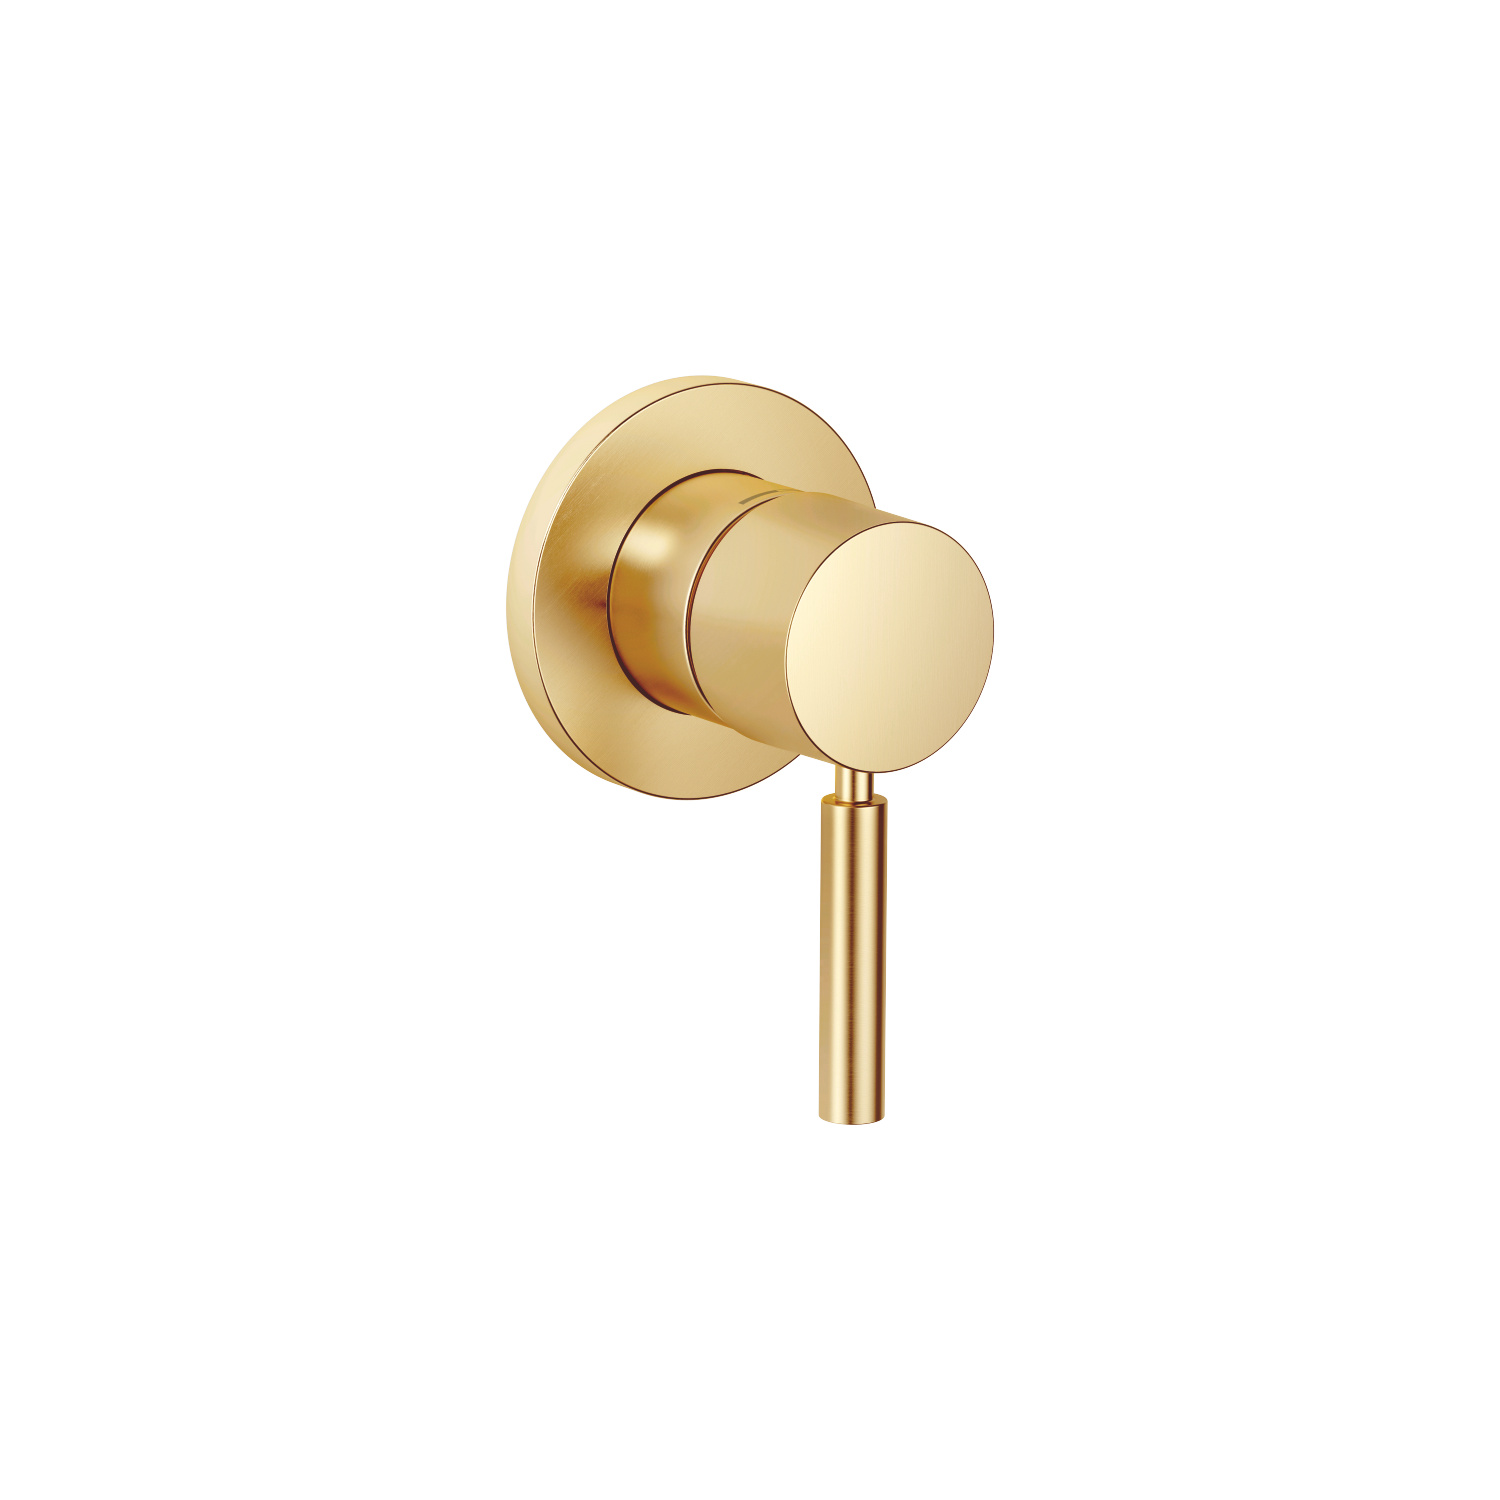 Concealed single-lever mixer with cover plate - brushed Durabrass